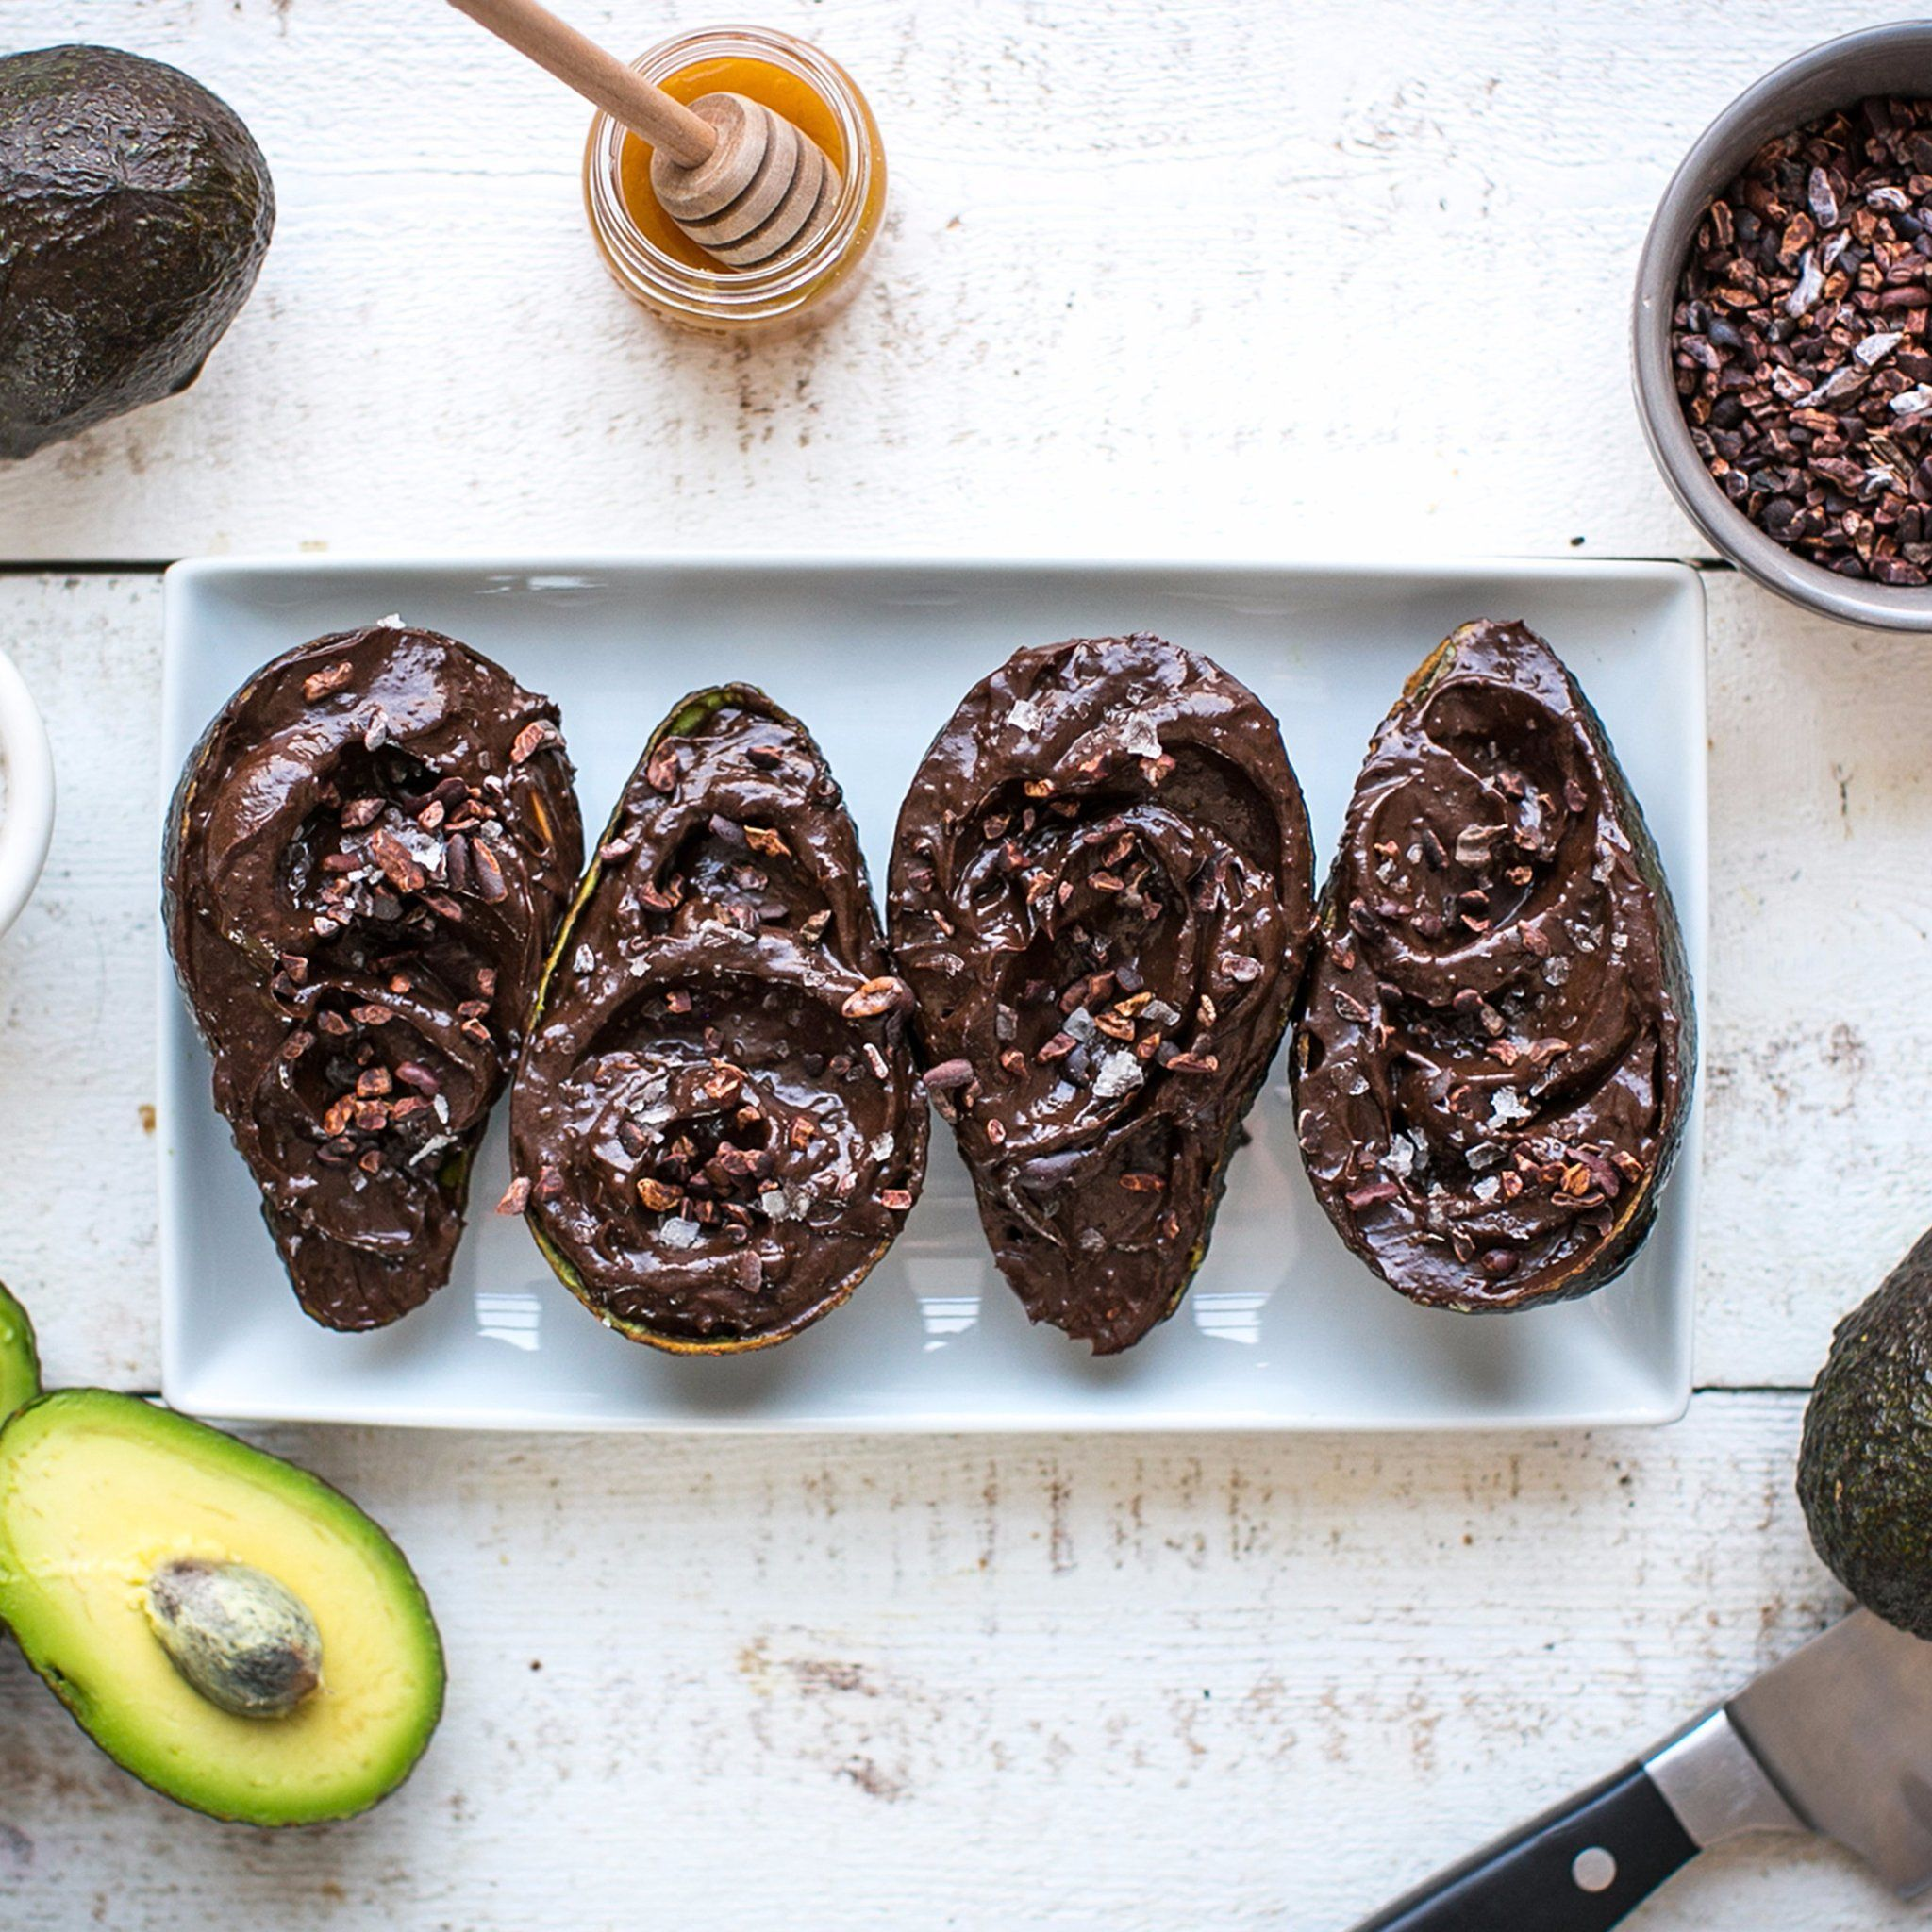 Avocado Fans Will Love This Chocolate Pudding [Video]